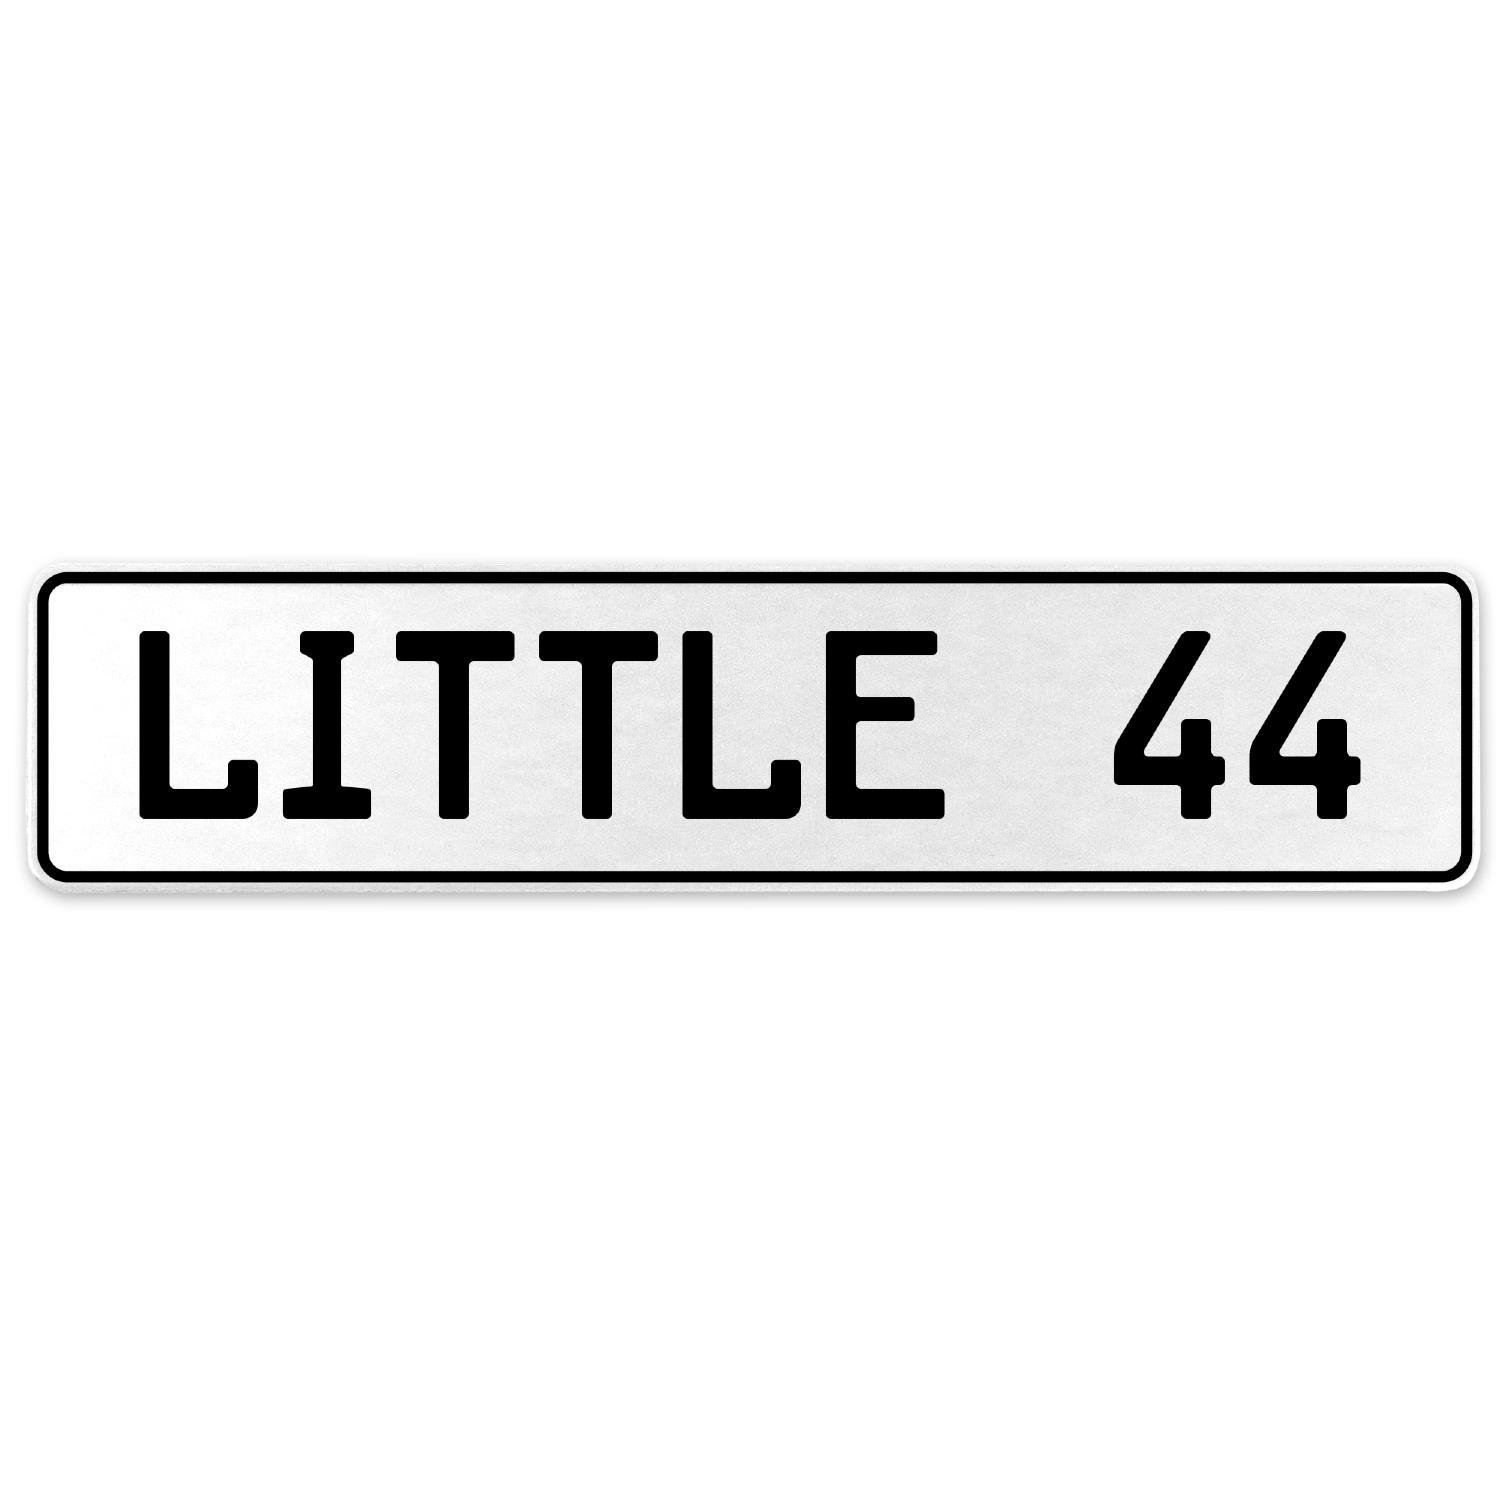 Vintage Parts 556324 Little 44 White Stamped Aluminum European License Plate